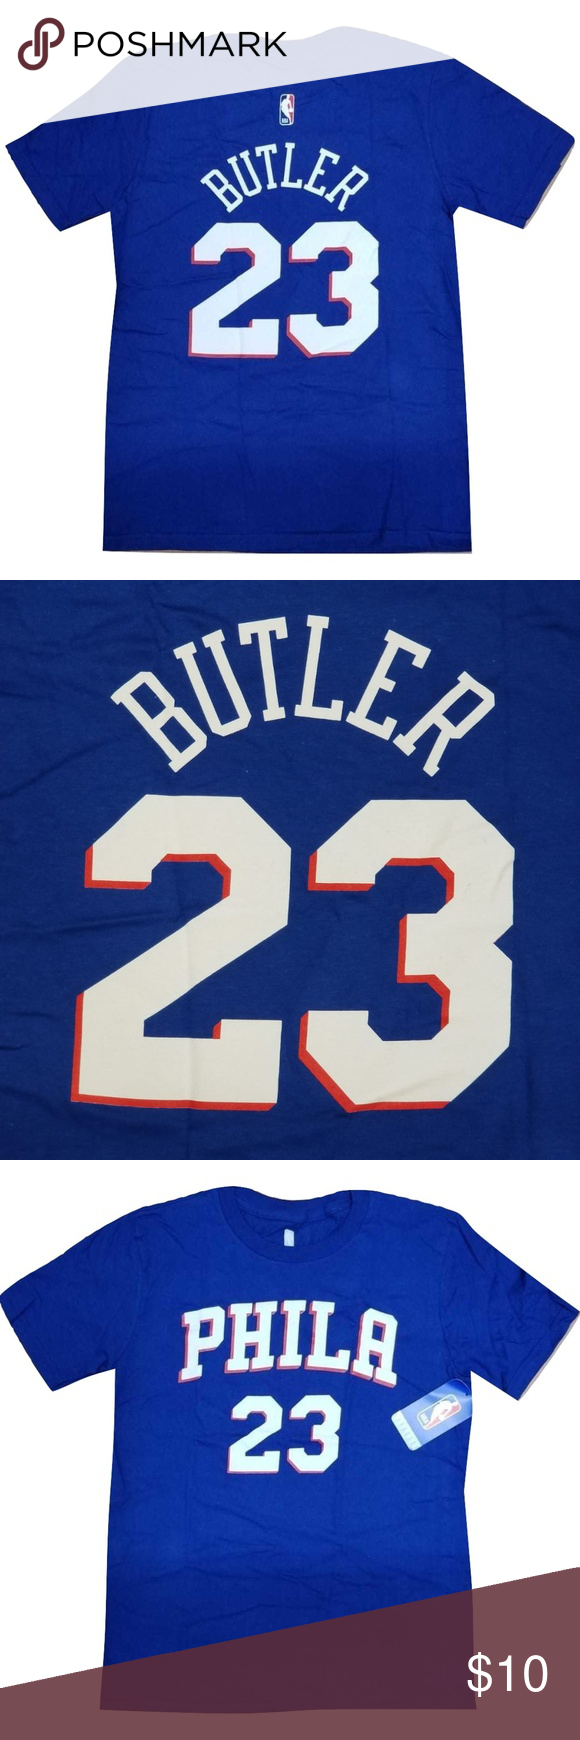 NBA Philadelphia 79ers Jimmy Butler Tshirt sz XL NBA